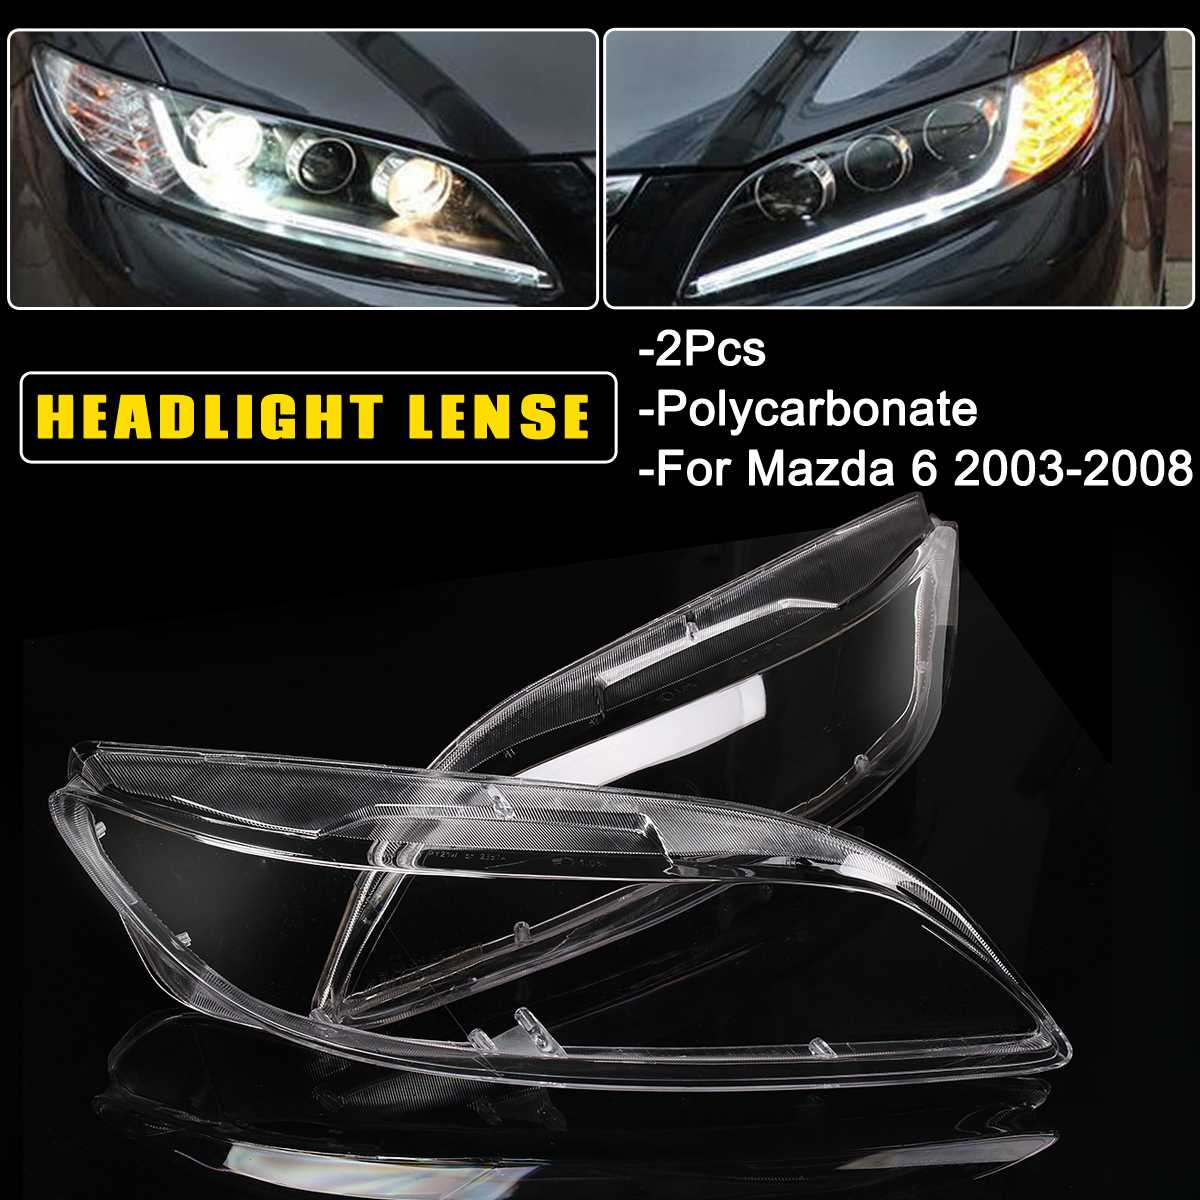 Autoleader 1 Pair For Mazda 6 2003-2008 Car Headlight Headlamp Plastic Clear Shell Lamp Cover Replacement  Lens Cover 60cmx6cm